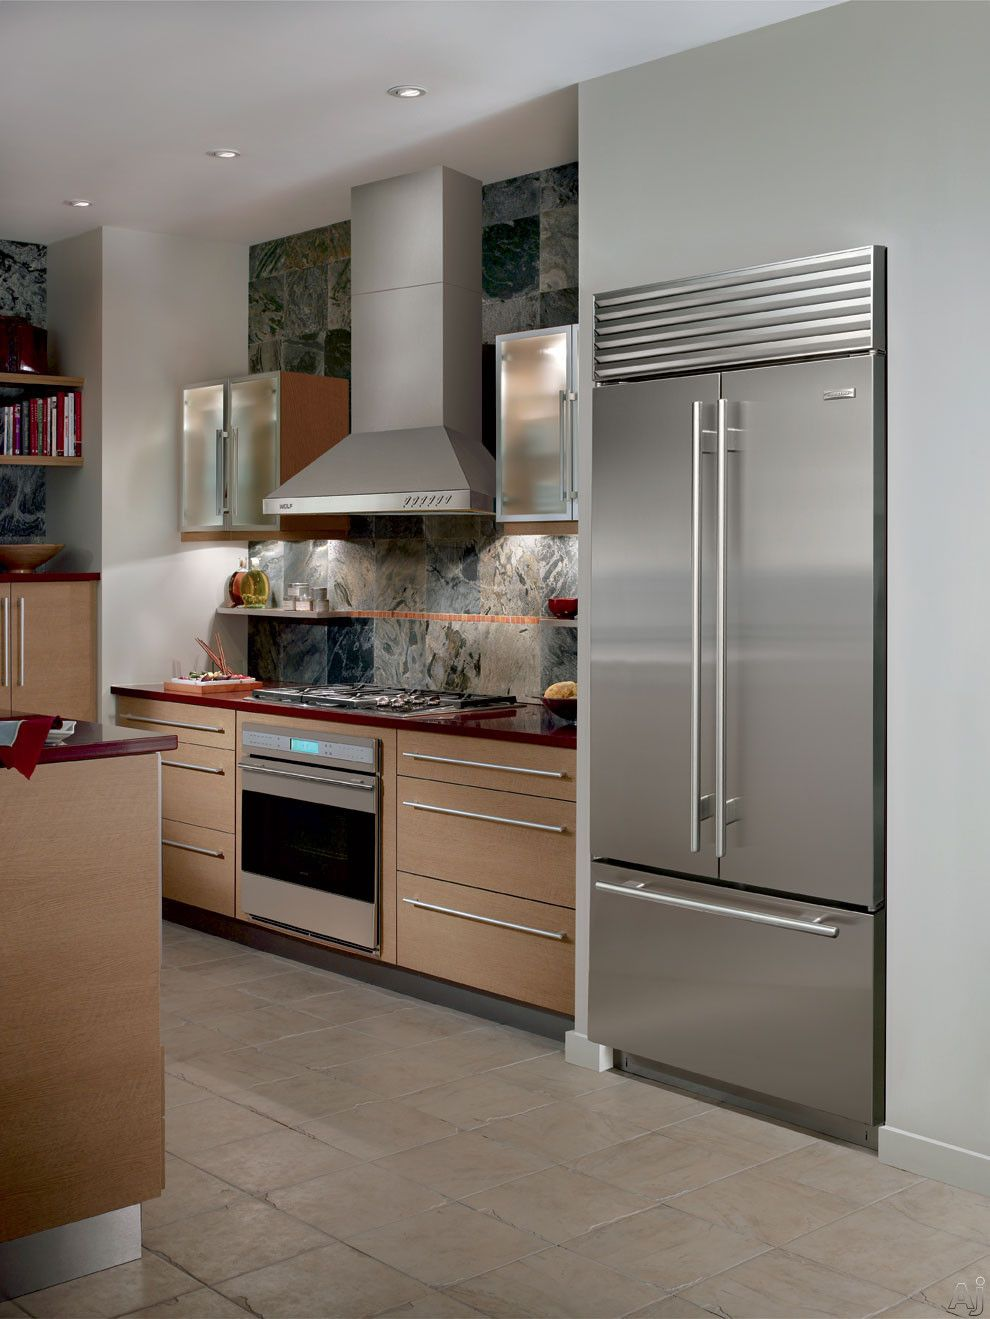 Sub Zero Bi36ufdo 36 Built In French Door Refrigerator With Spill Proof Glass Shelves High Steel Kitchen Appliances French Door Refrigerator Kitchen Chimney